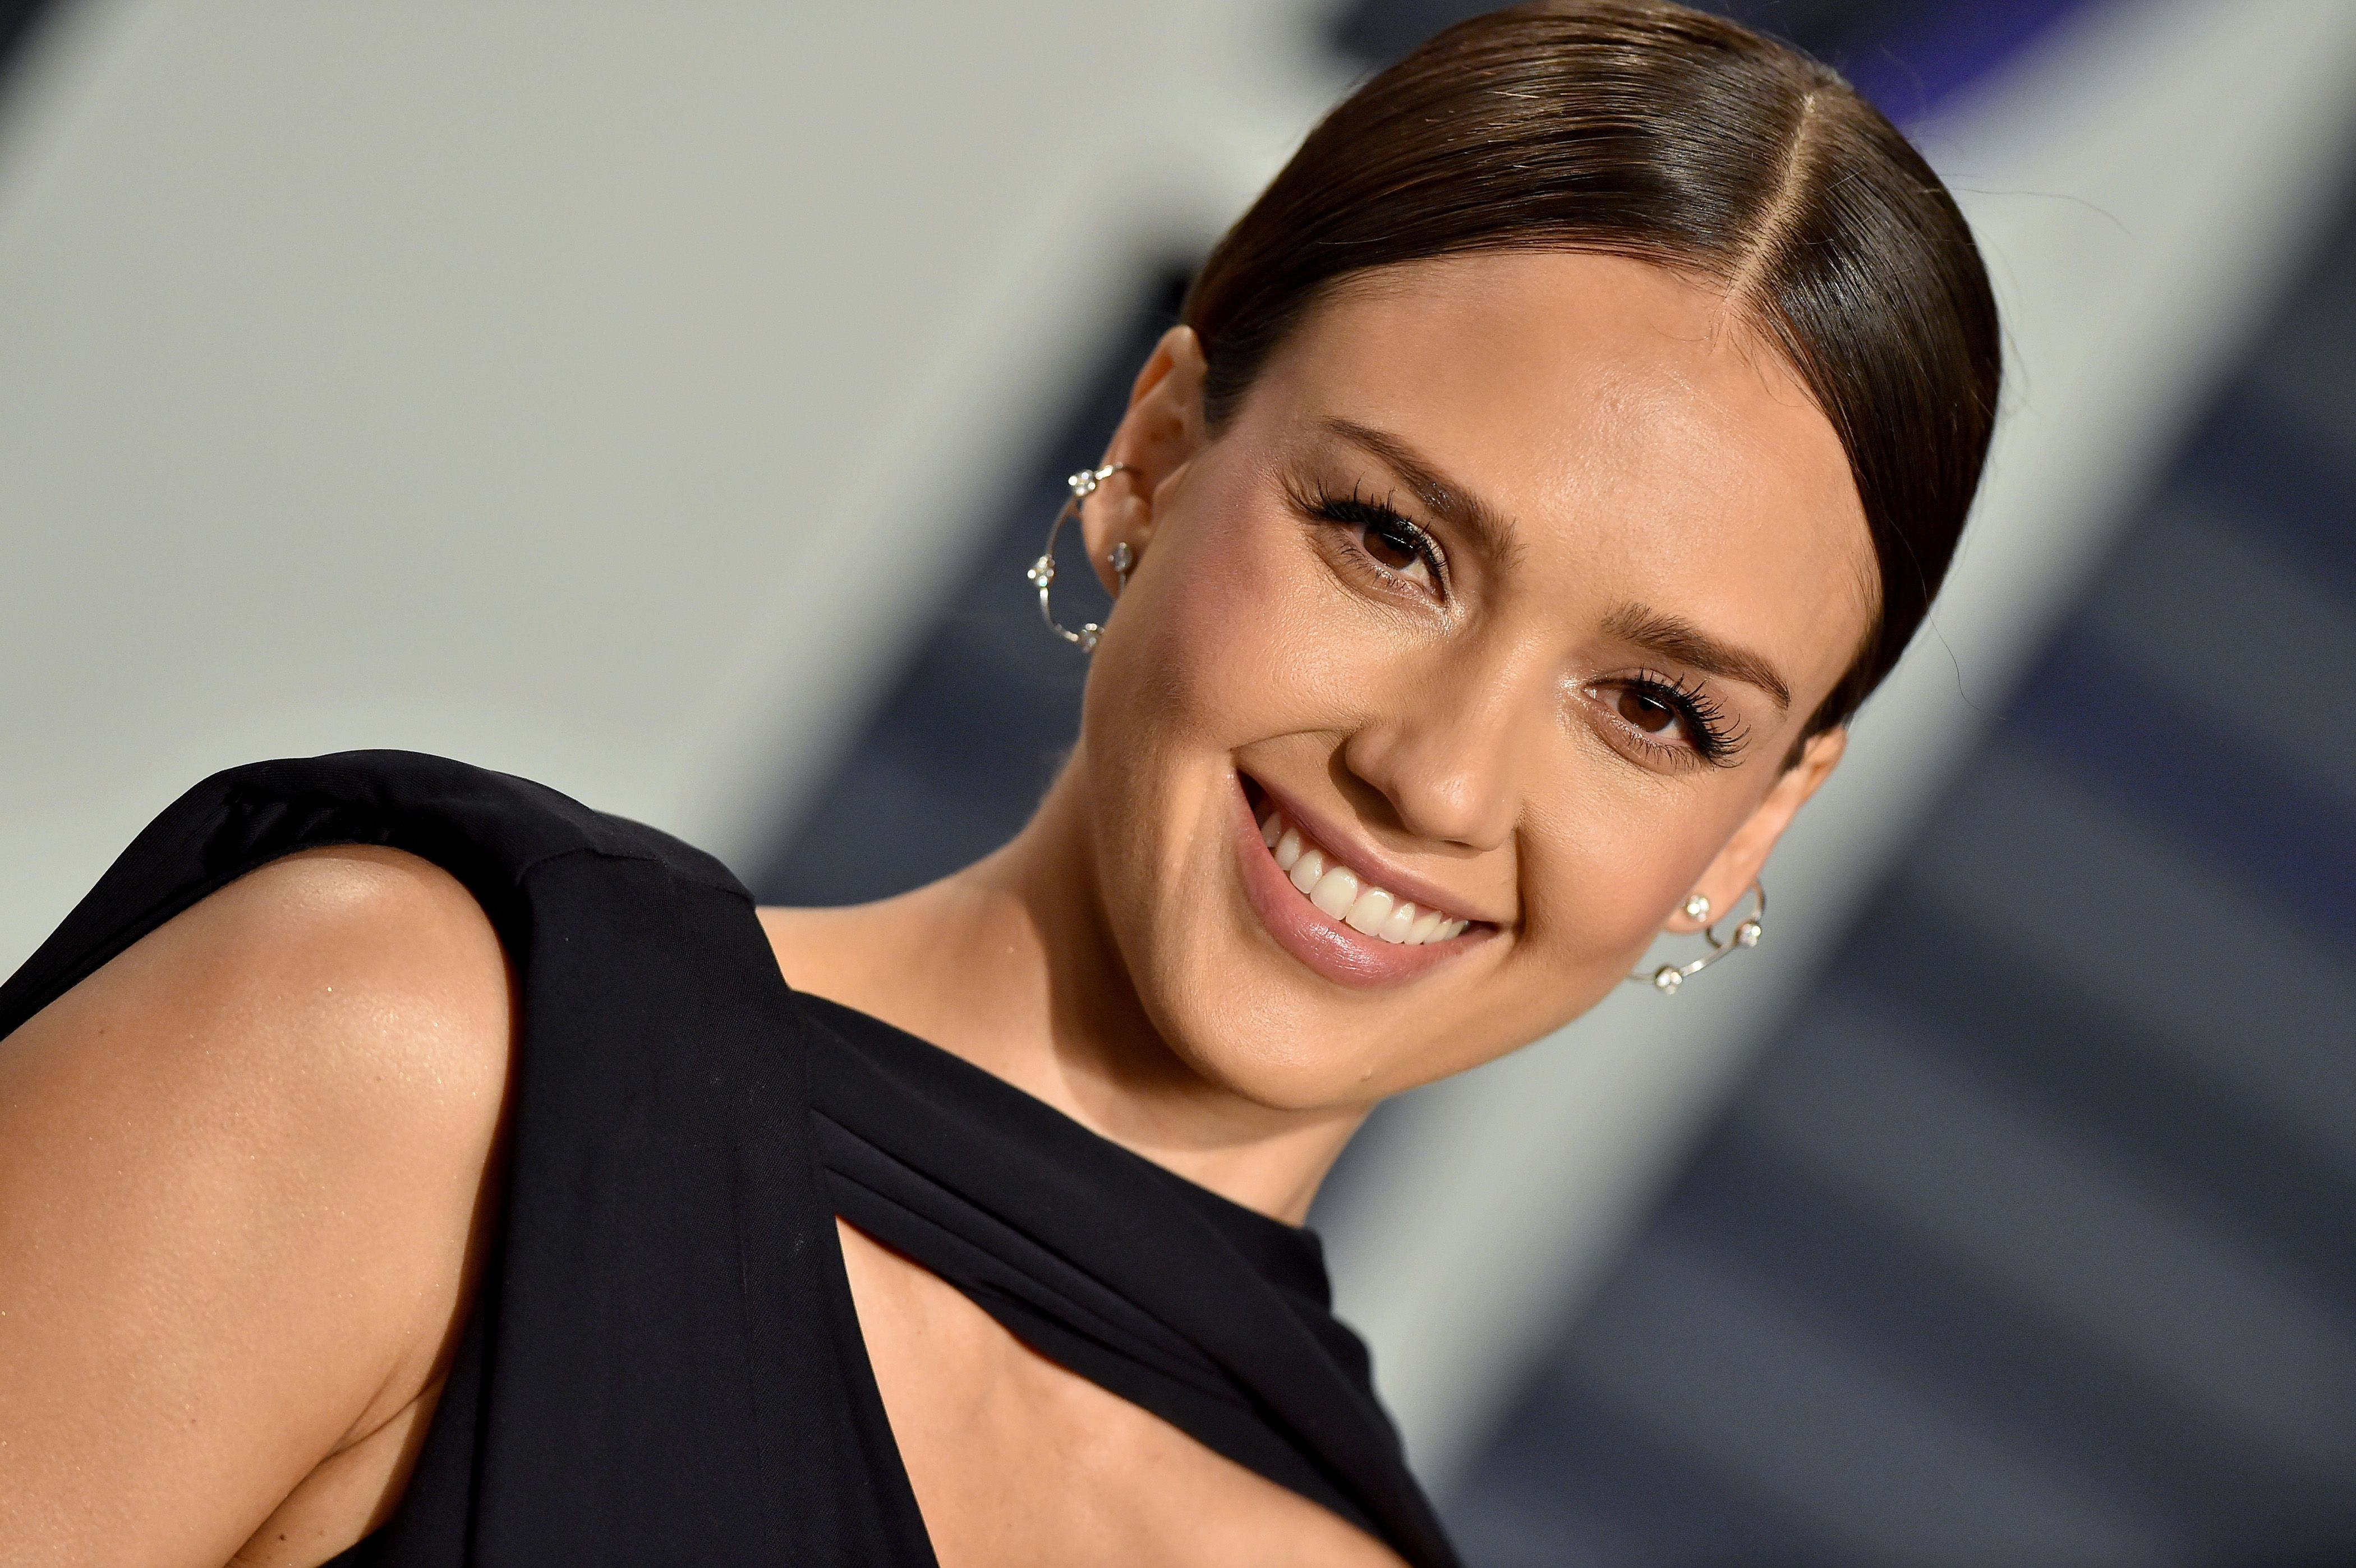 Jessica Alba Posts No Makeup Selfie On Instagram With Acupuncture